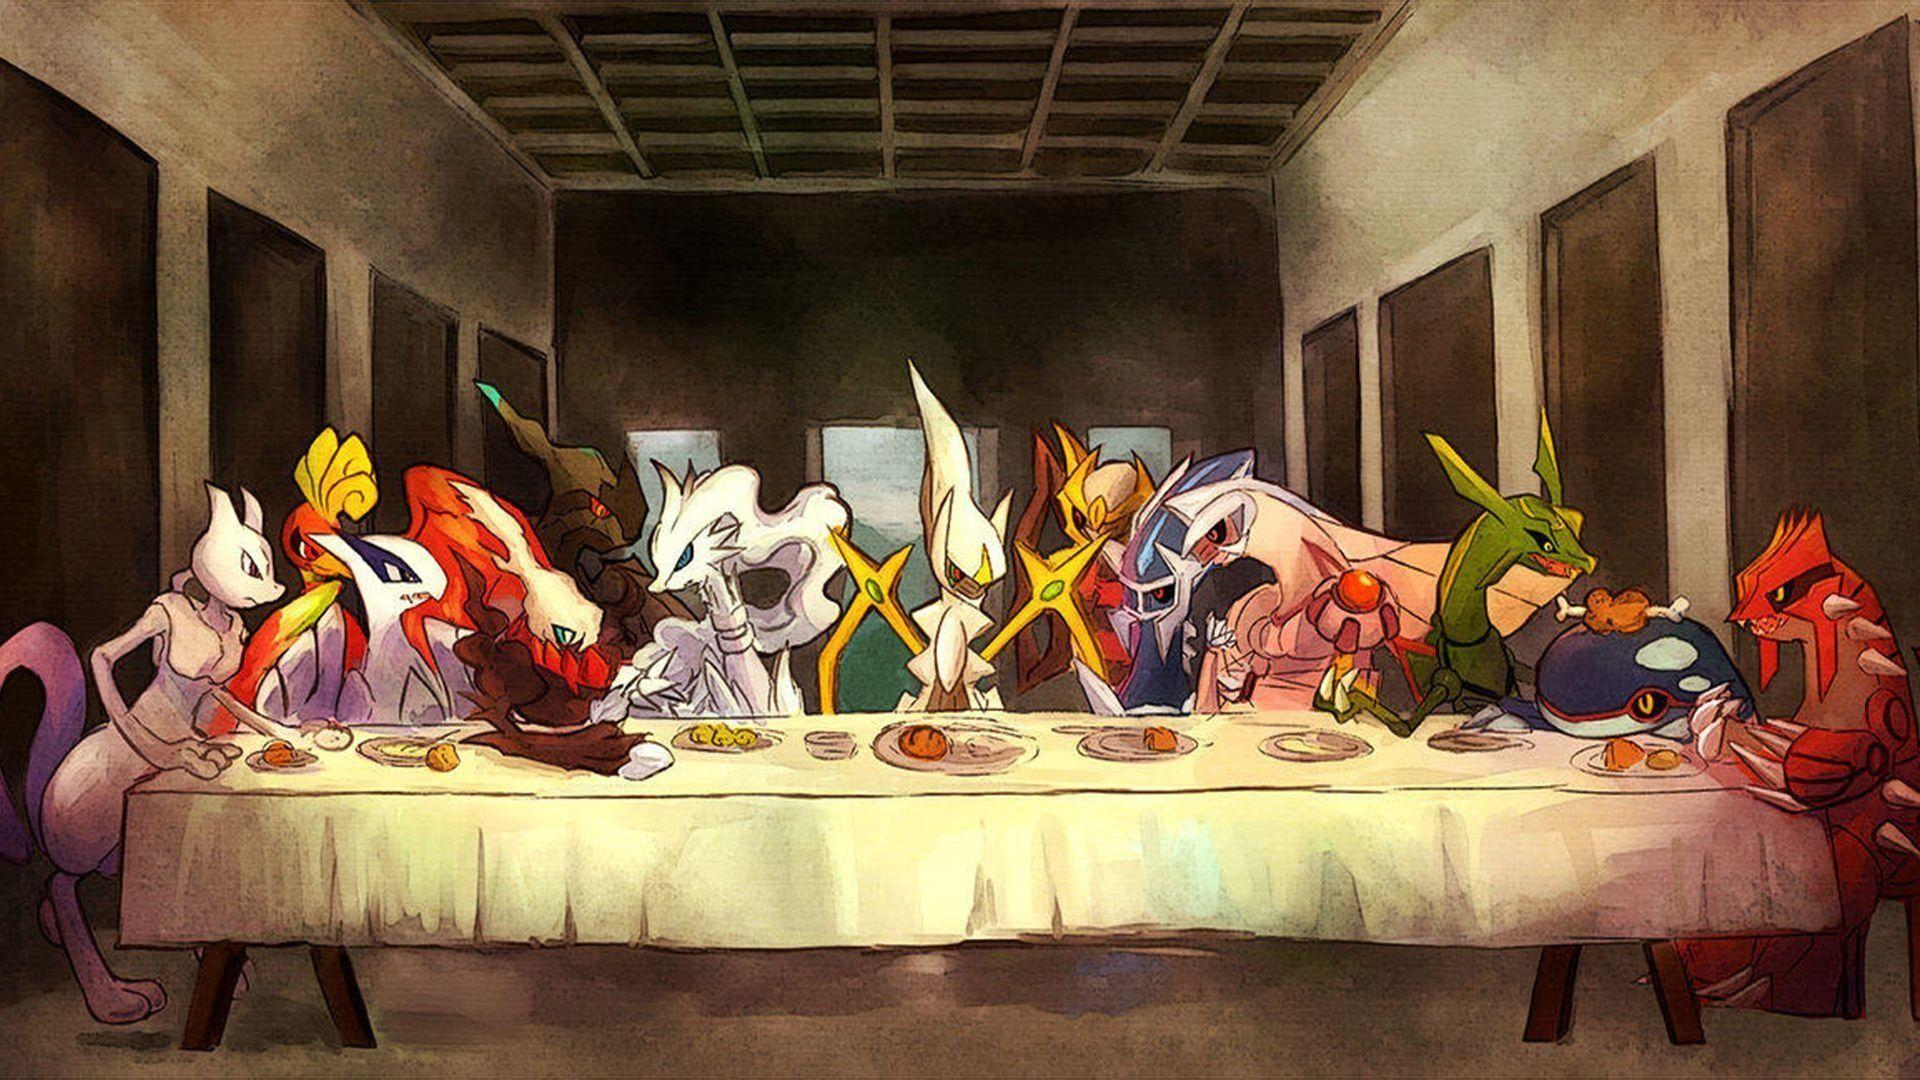 11 Arceus (Pokémon) HD Wallpapers | Background Images - Wallpaper Abyss